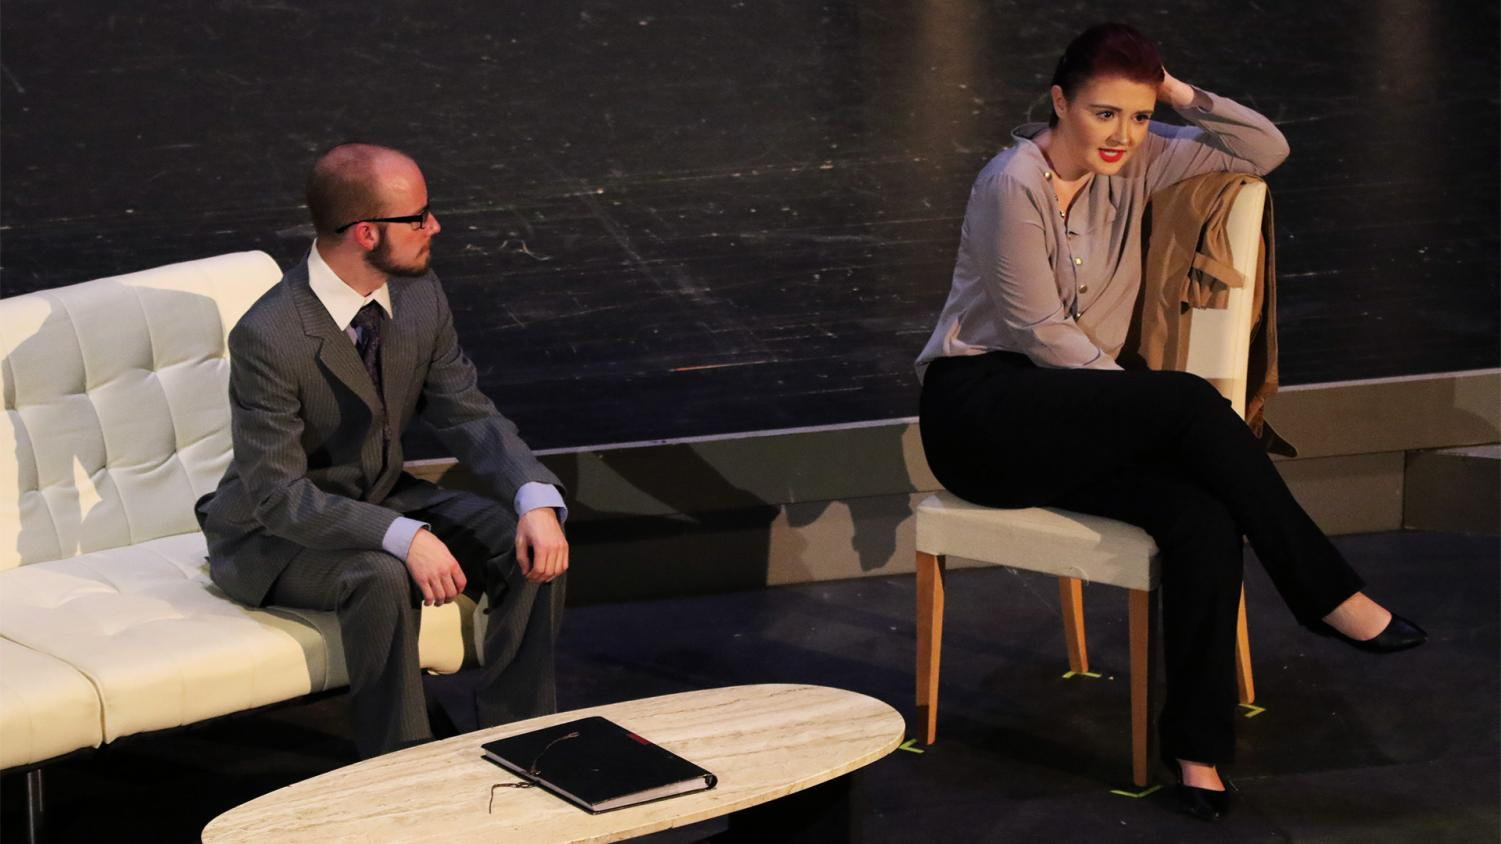 Sophomores Drew Cheek and Kenzie Kuhlmann star as Judge Brack and Hedda Gabler. The play will be performed 7:30 p.m. Nov. 7-9 and 2 p.m. on Nov. 11.